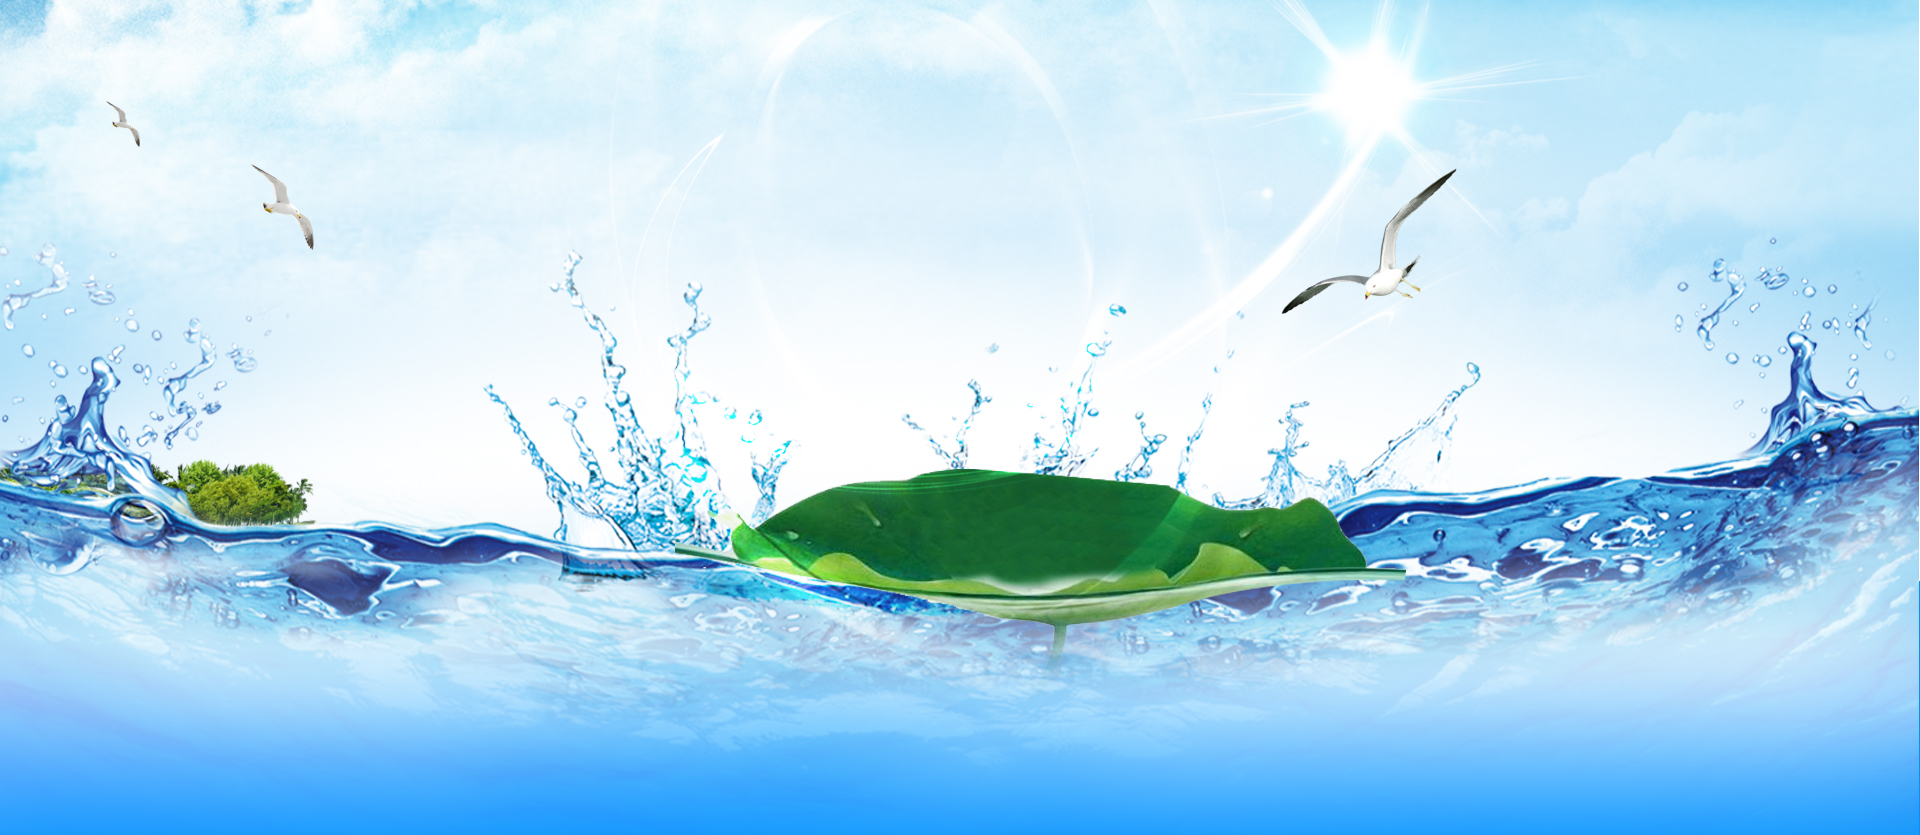 seagull water background banner lotus leaf  seagull  water